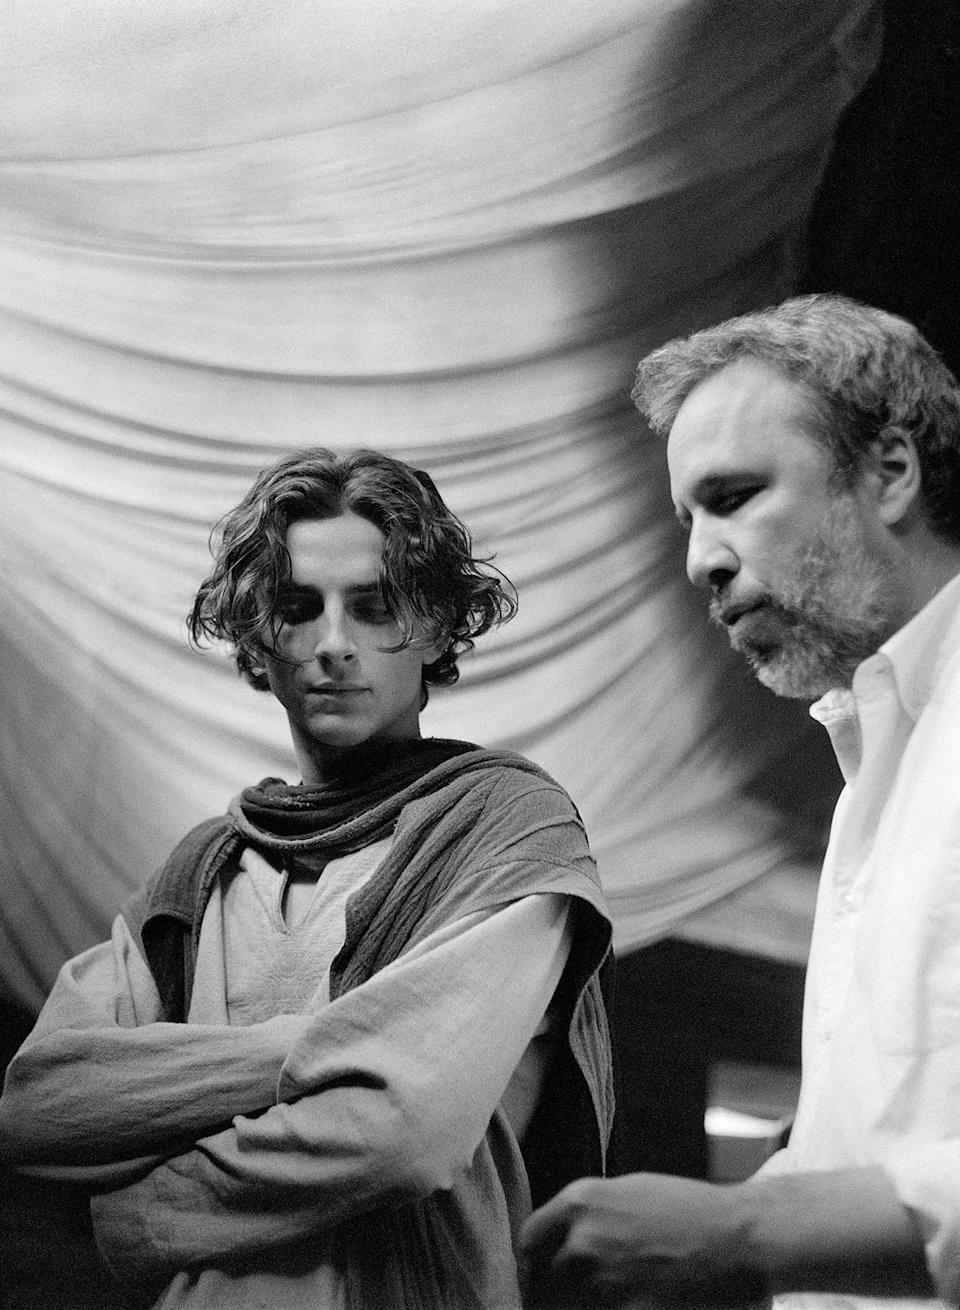 """<p>Taking photos on set, especially during moments that would otherwise be downtime for a cinematographer, gave Fraser a different view of interactions between Villeneuve (seen here with Chalamet) and the cast.</p> <p>""""So while the director and actors are talking, I'm watching them talk and watching subtle little things happen, which ordinarily I wouldn't be tuned into if I wasn't in the act of taking a photograph,"""" Fraser said.</p>"""